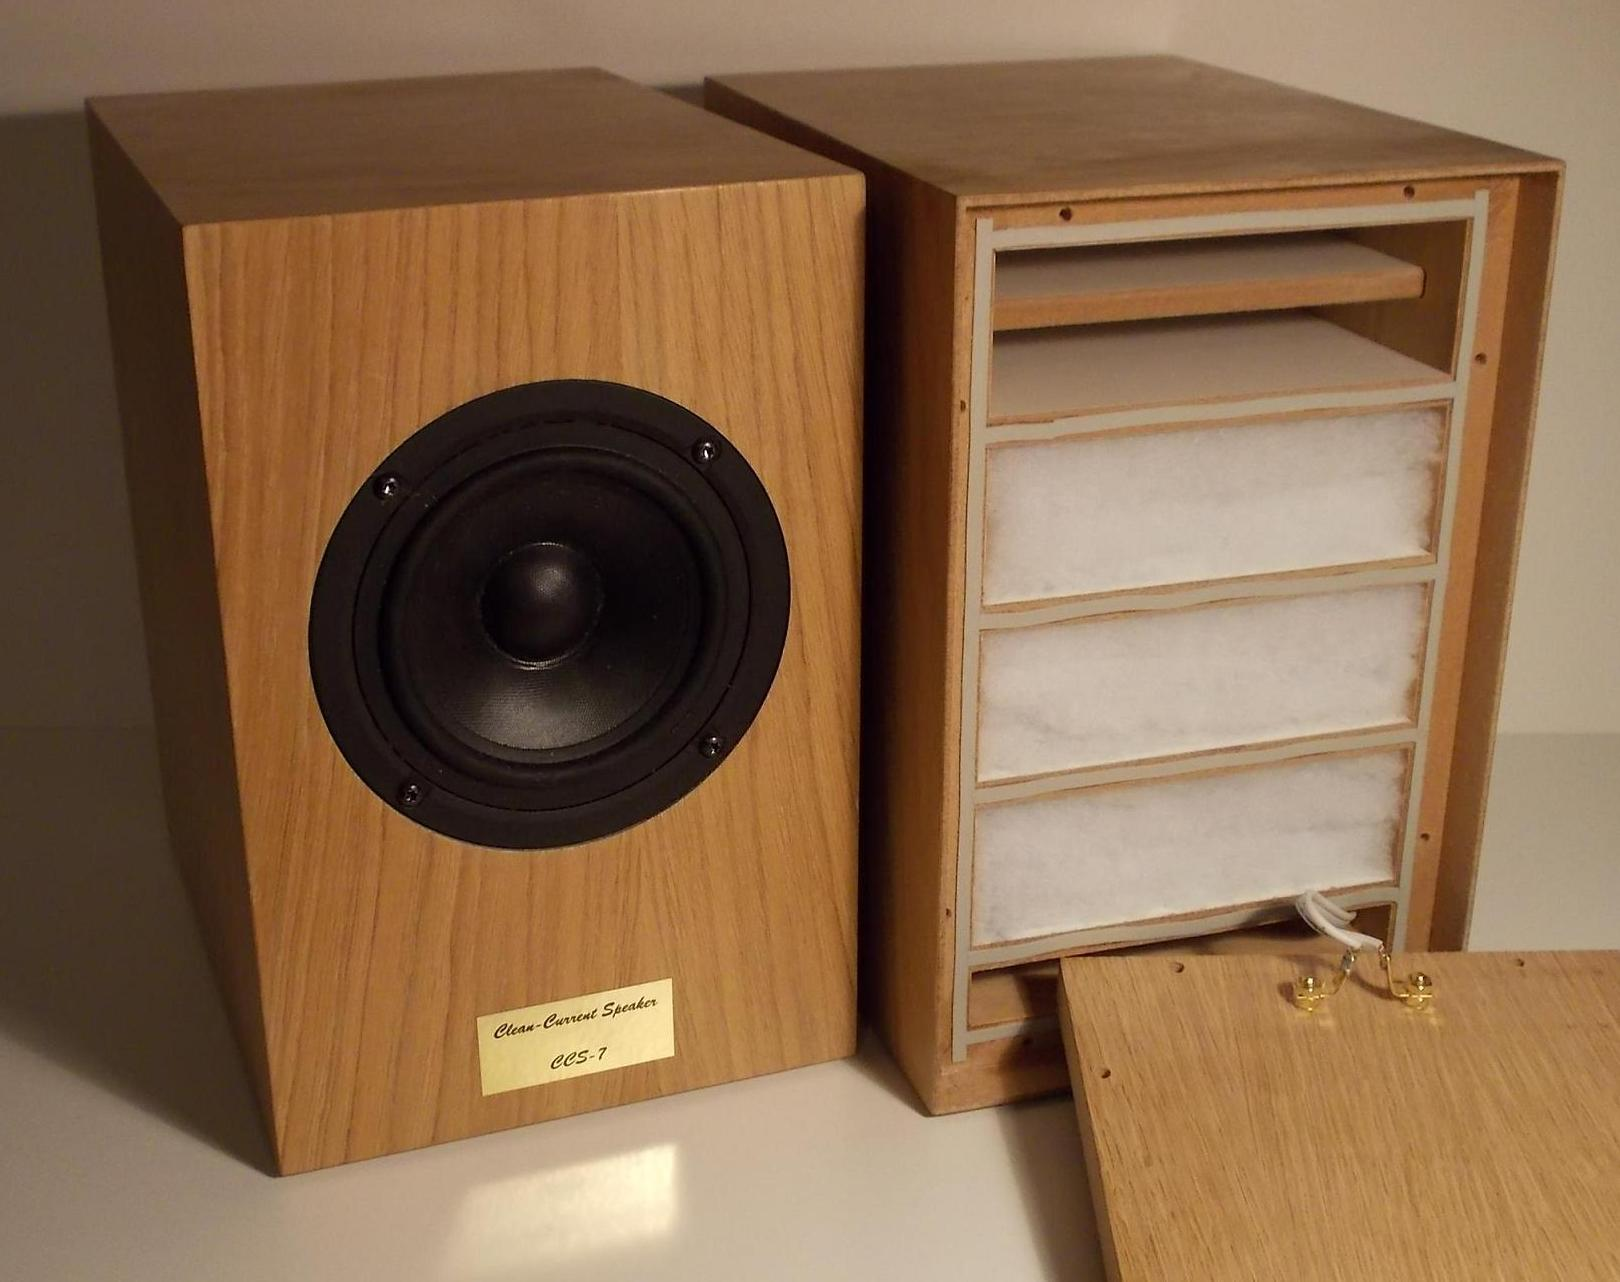 Clean Current Speaker Project Current Drive The Natural Way Of Loudspeaker Operation